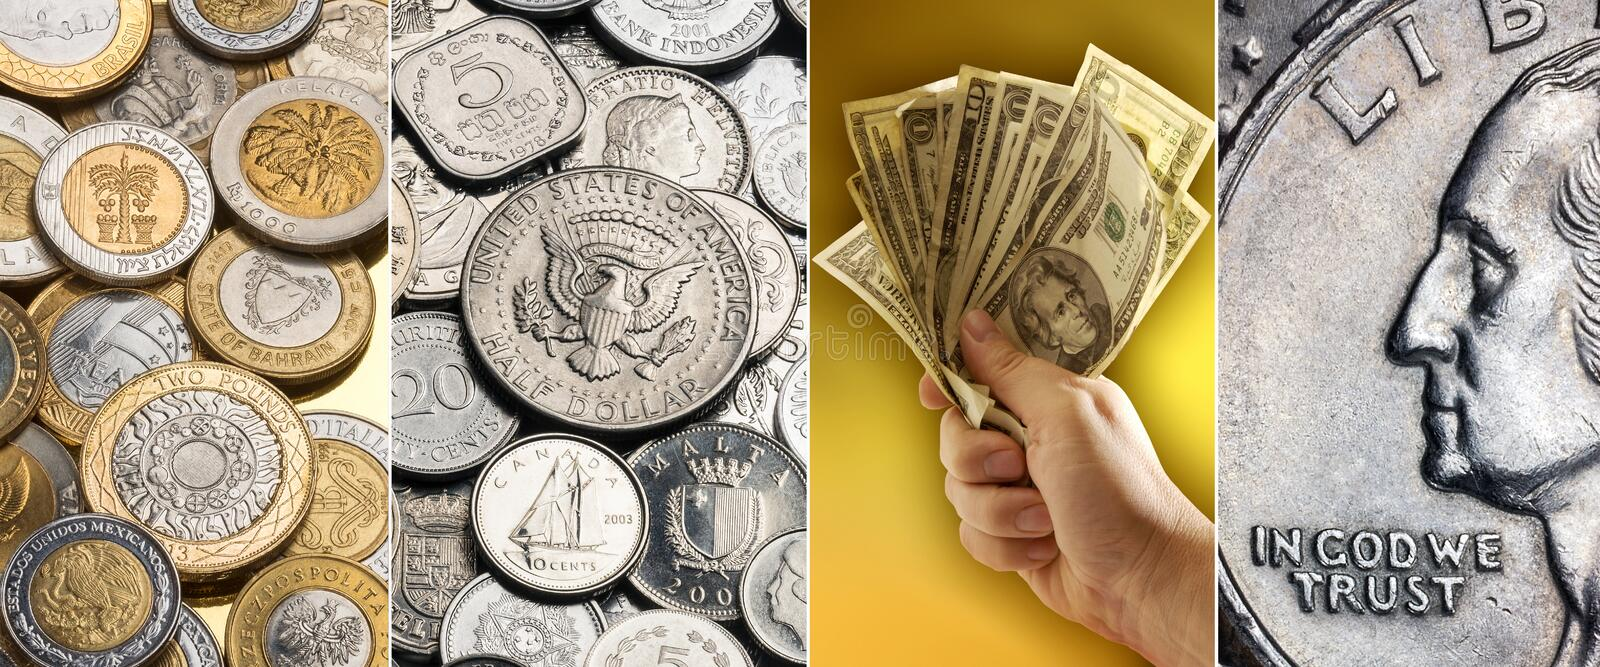 Coins and banknotes - International currency. Coins and banknotes - Bimetallic coins from around the world, Silver coins, Handful of US Dollar Banknotes and royalty free stock photo